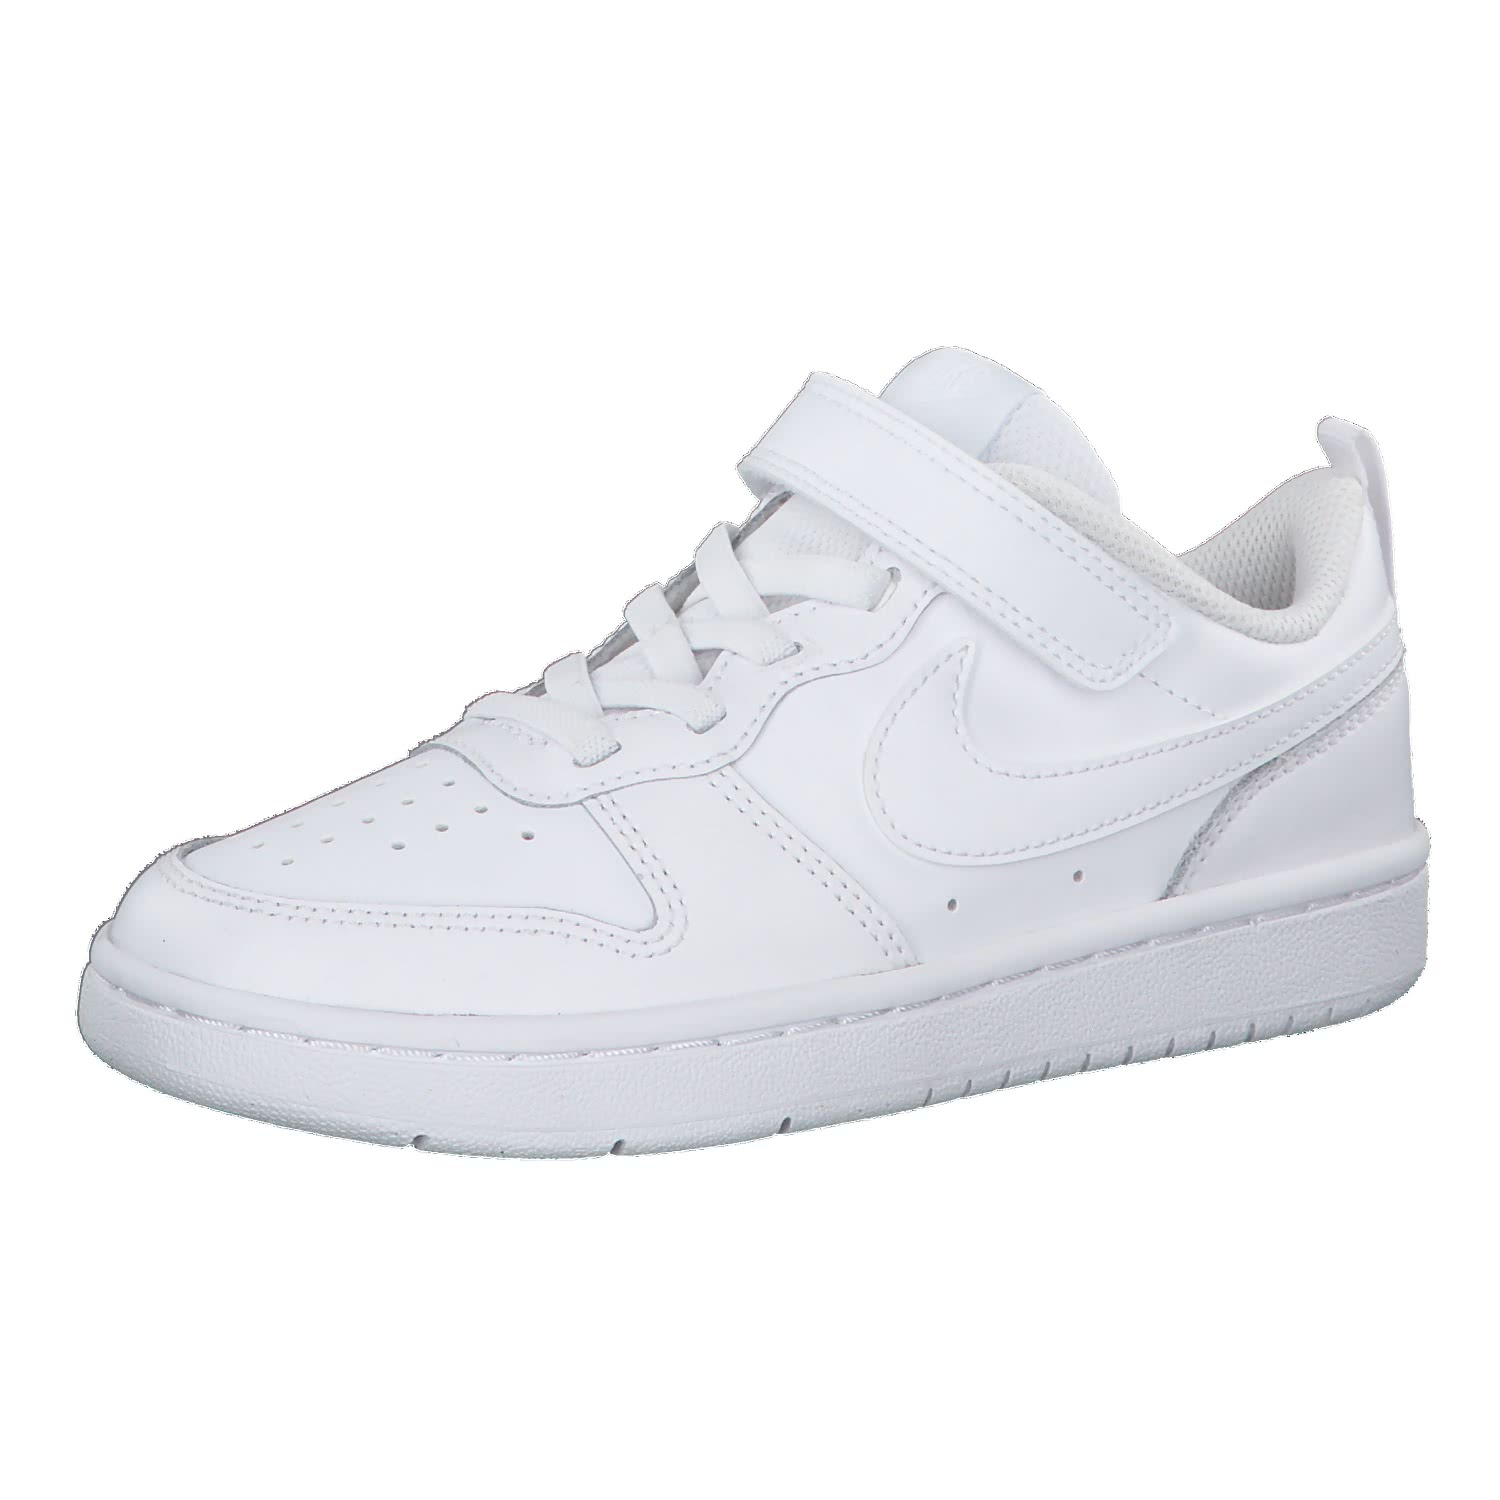 Nike Kinder Sneaker Court Borough Low 2 (PSV) BQ5451